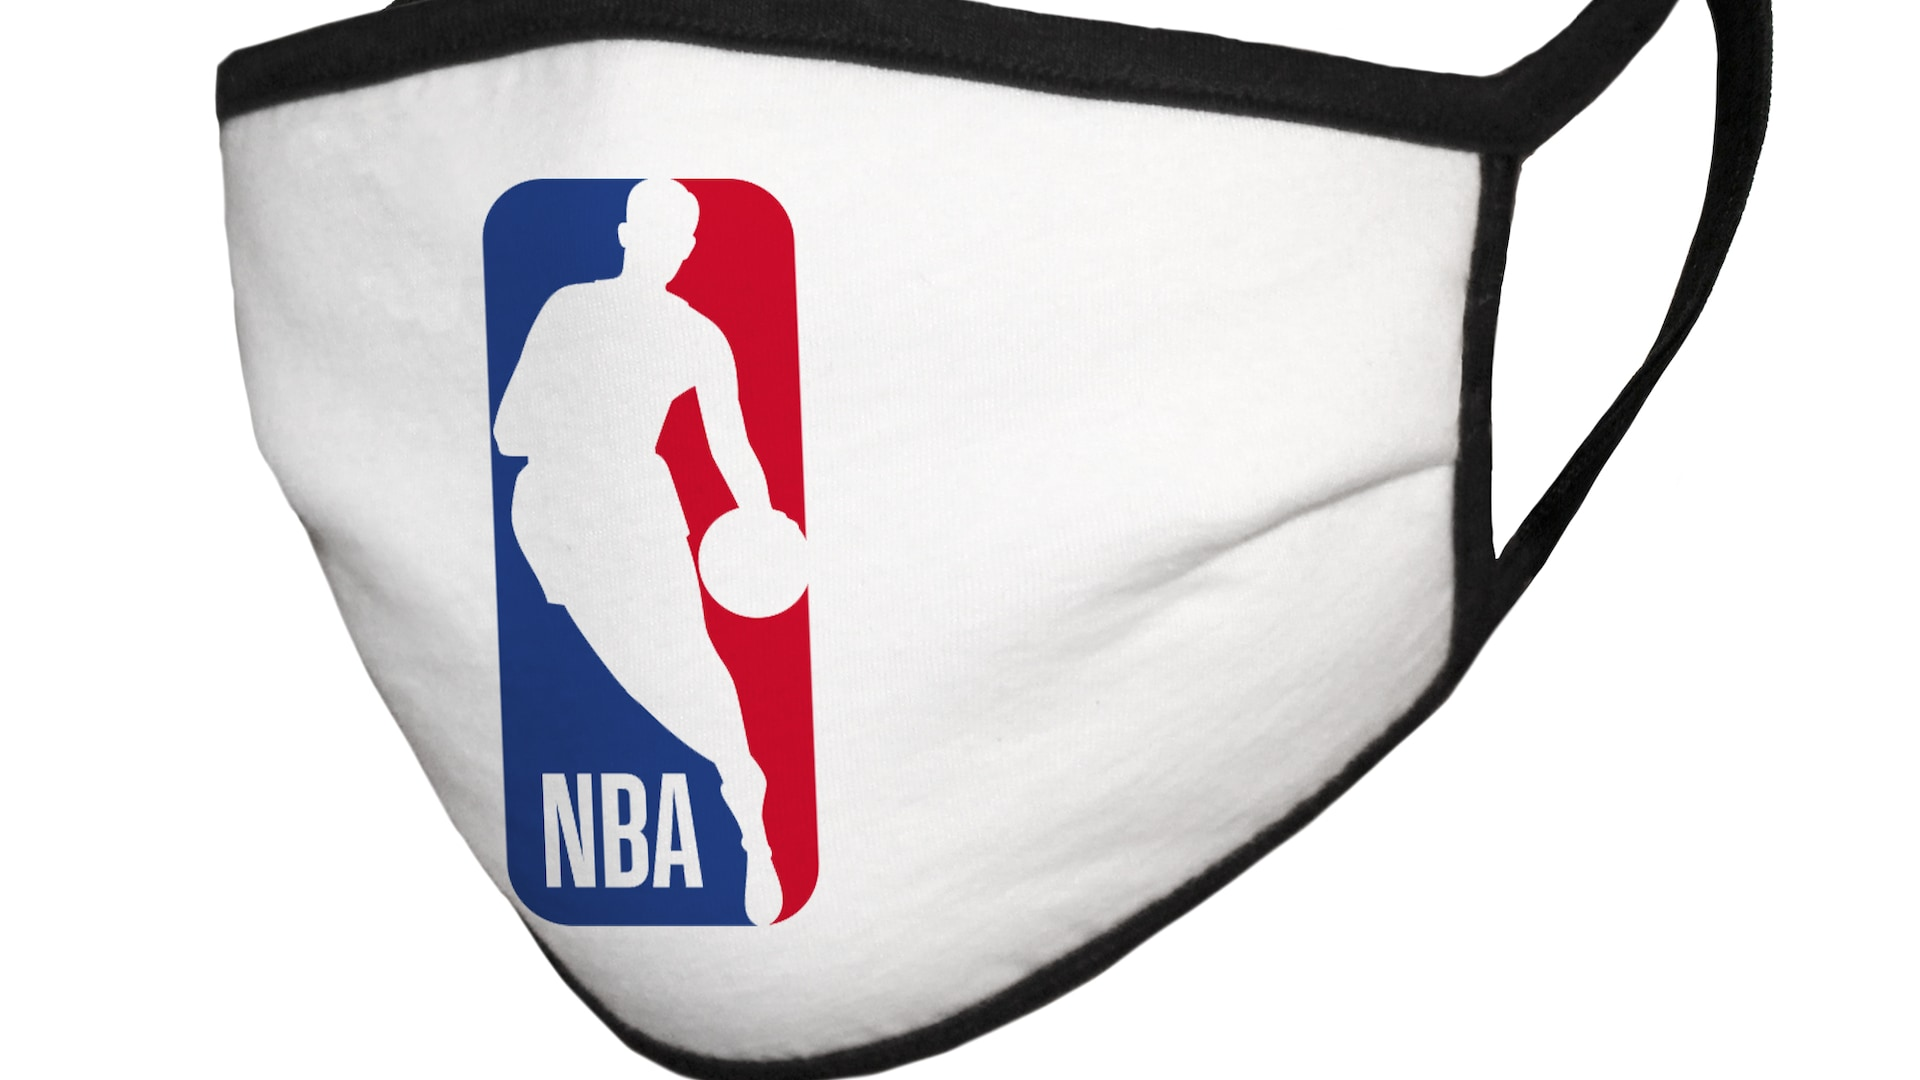 NBAStore.com, WNBAStore.com to sell cloth face coverings to benefit communities affected by COVID-19